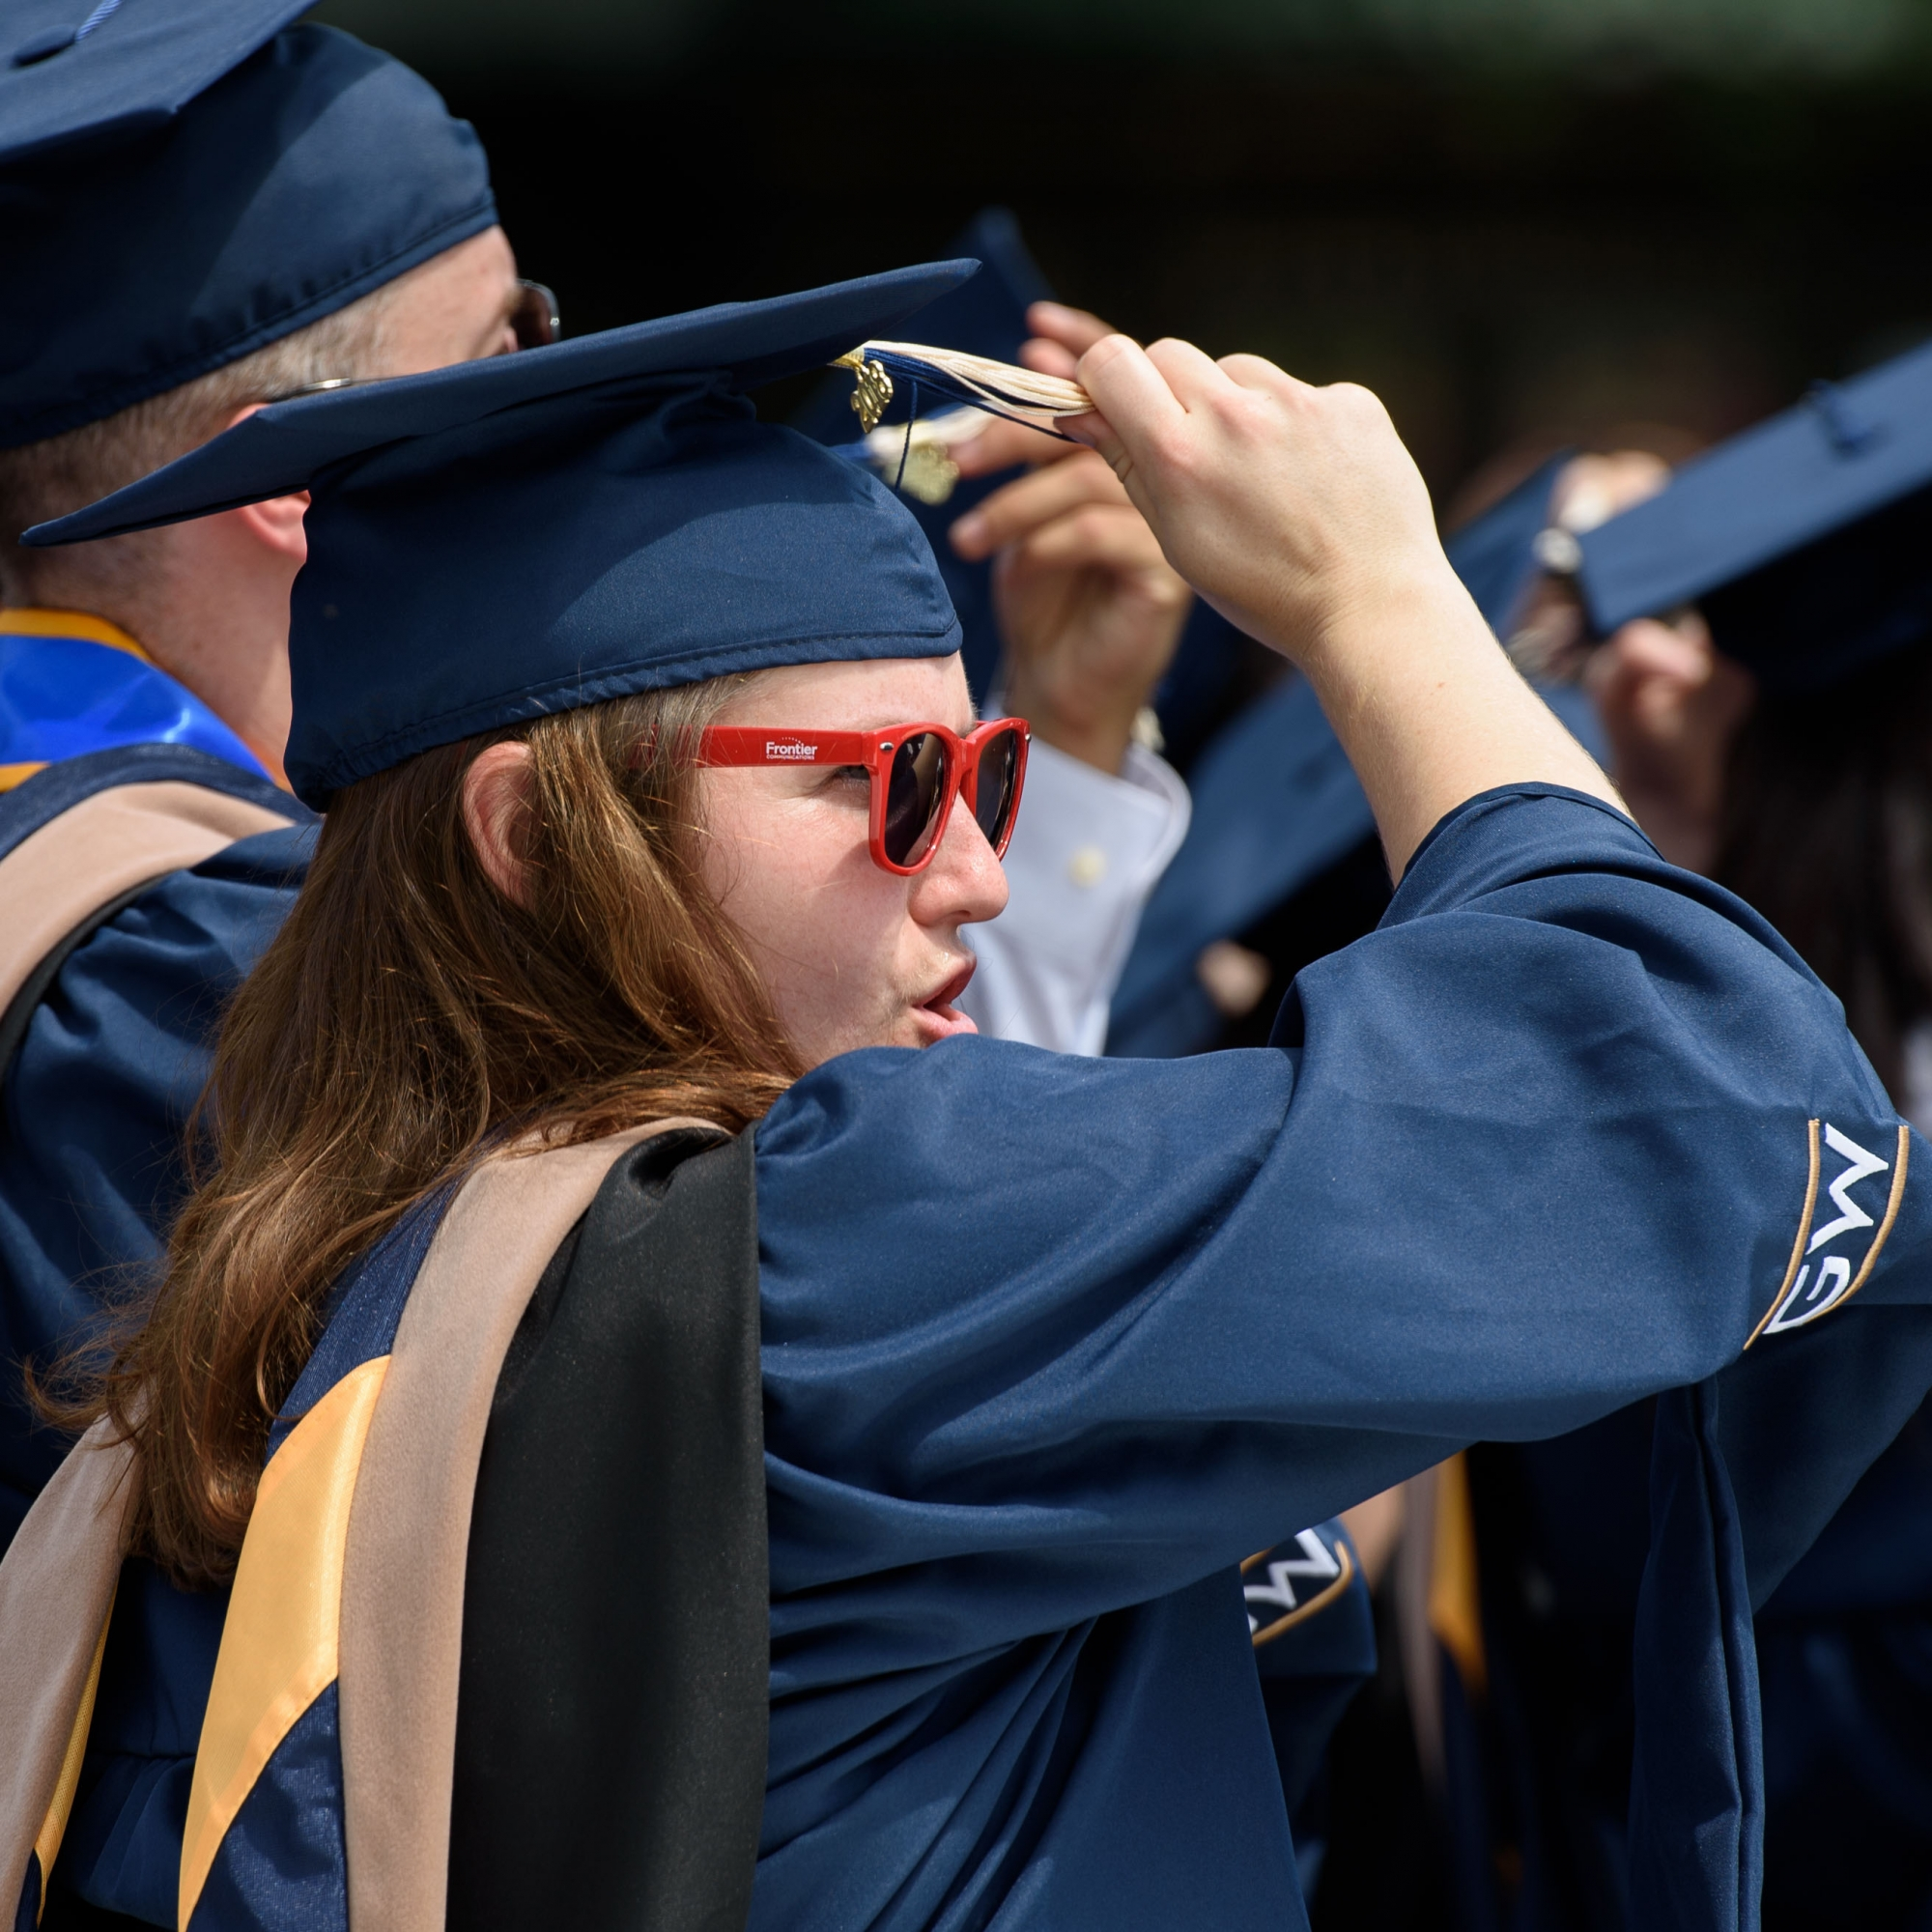 A female graduate moving her tassel and wearing sunglasses